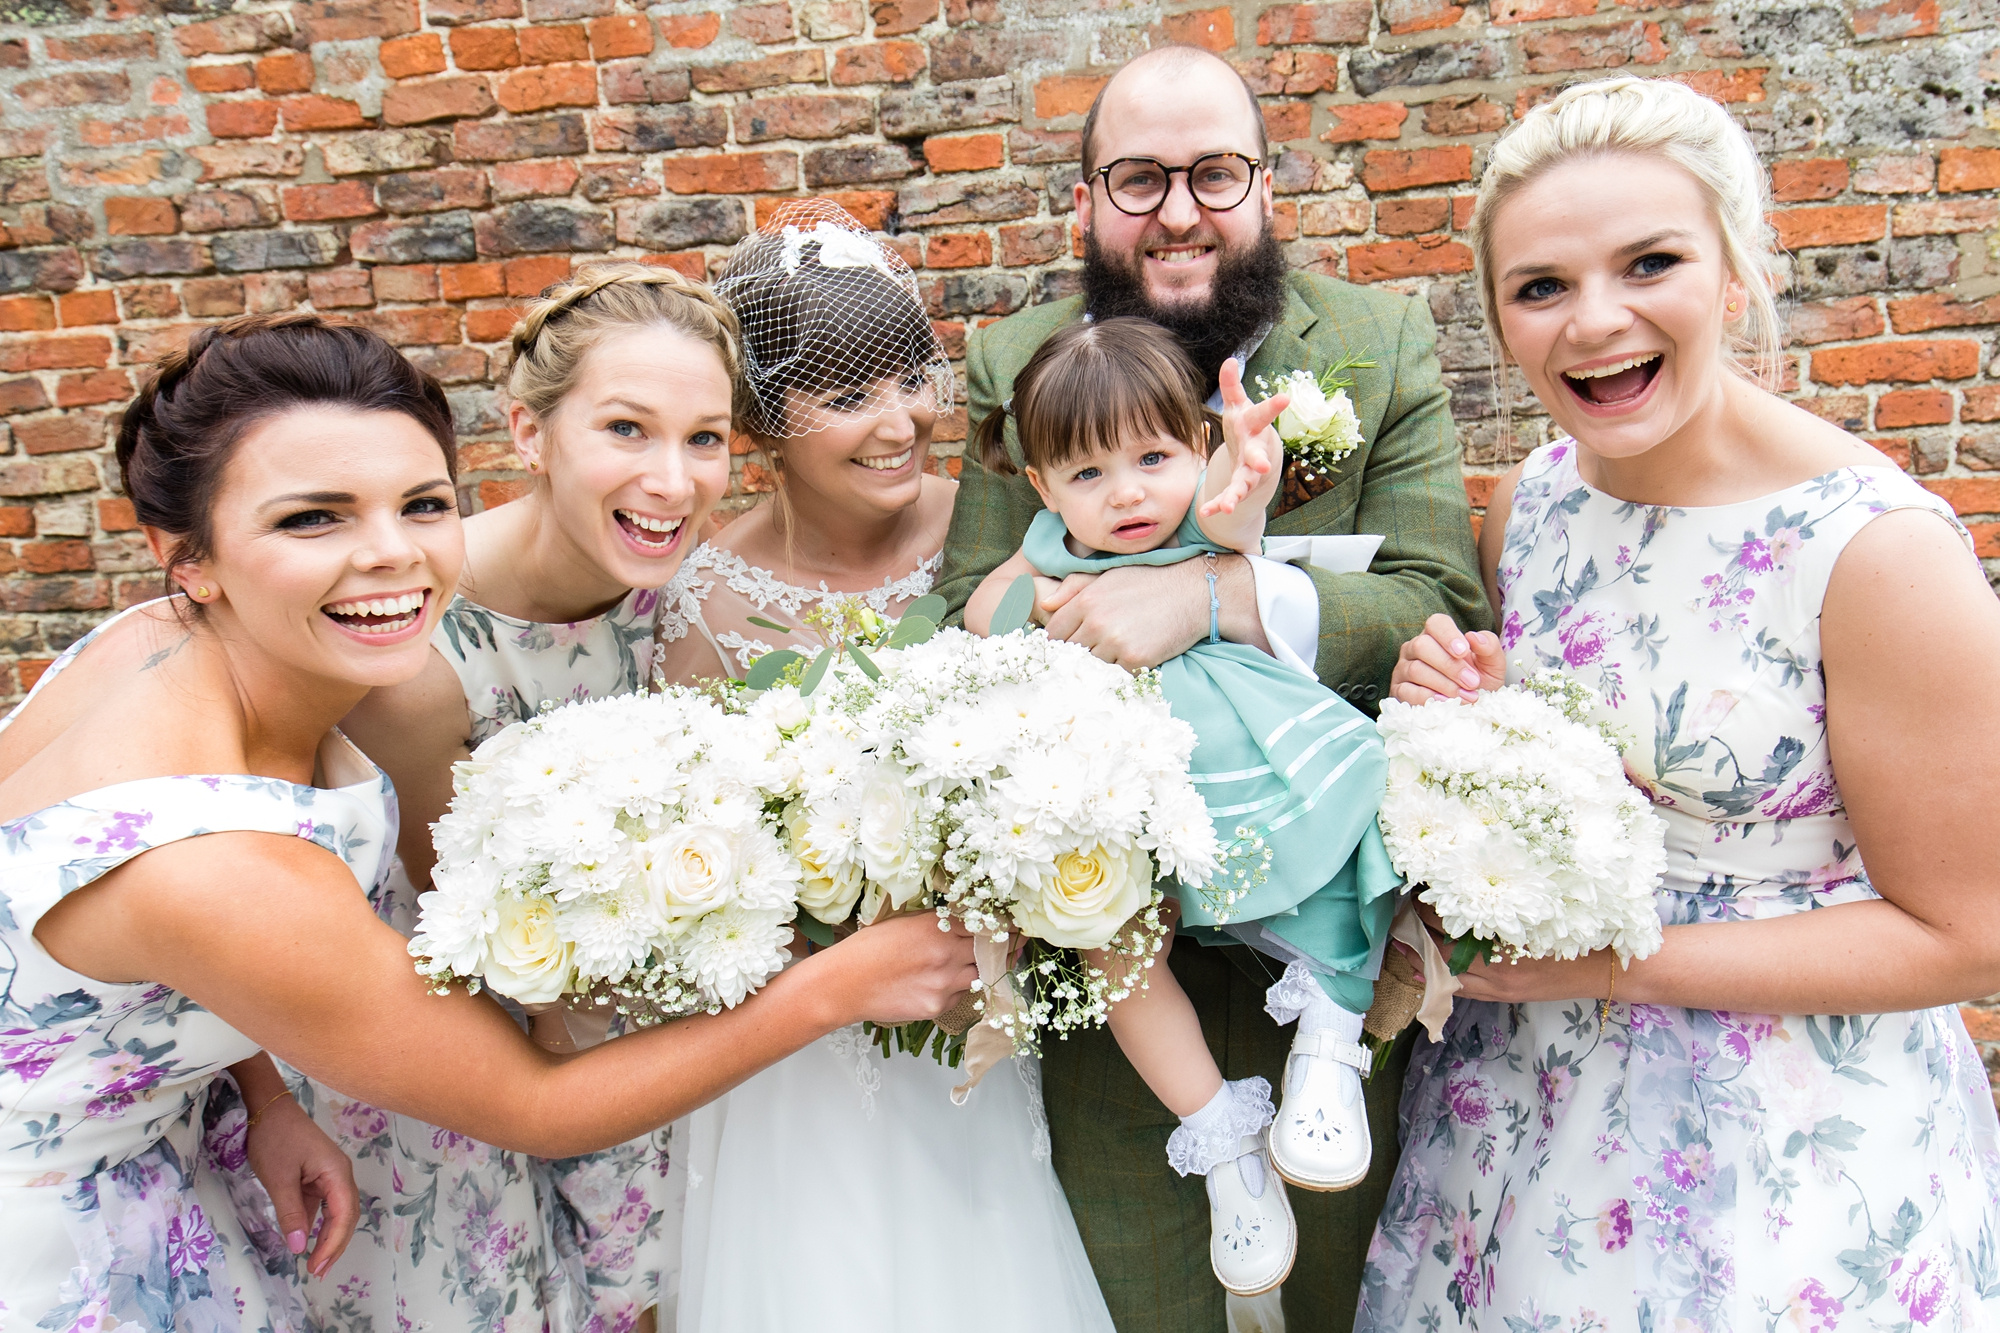 York Wedding Photography at Barmbyfield Barns group photo with flower girl